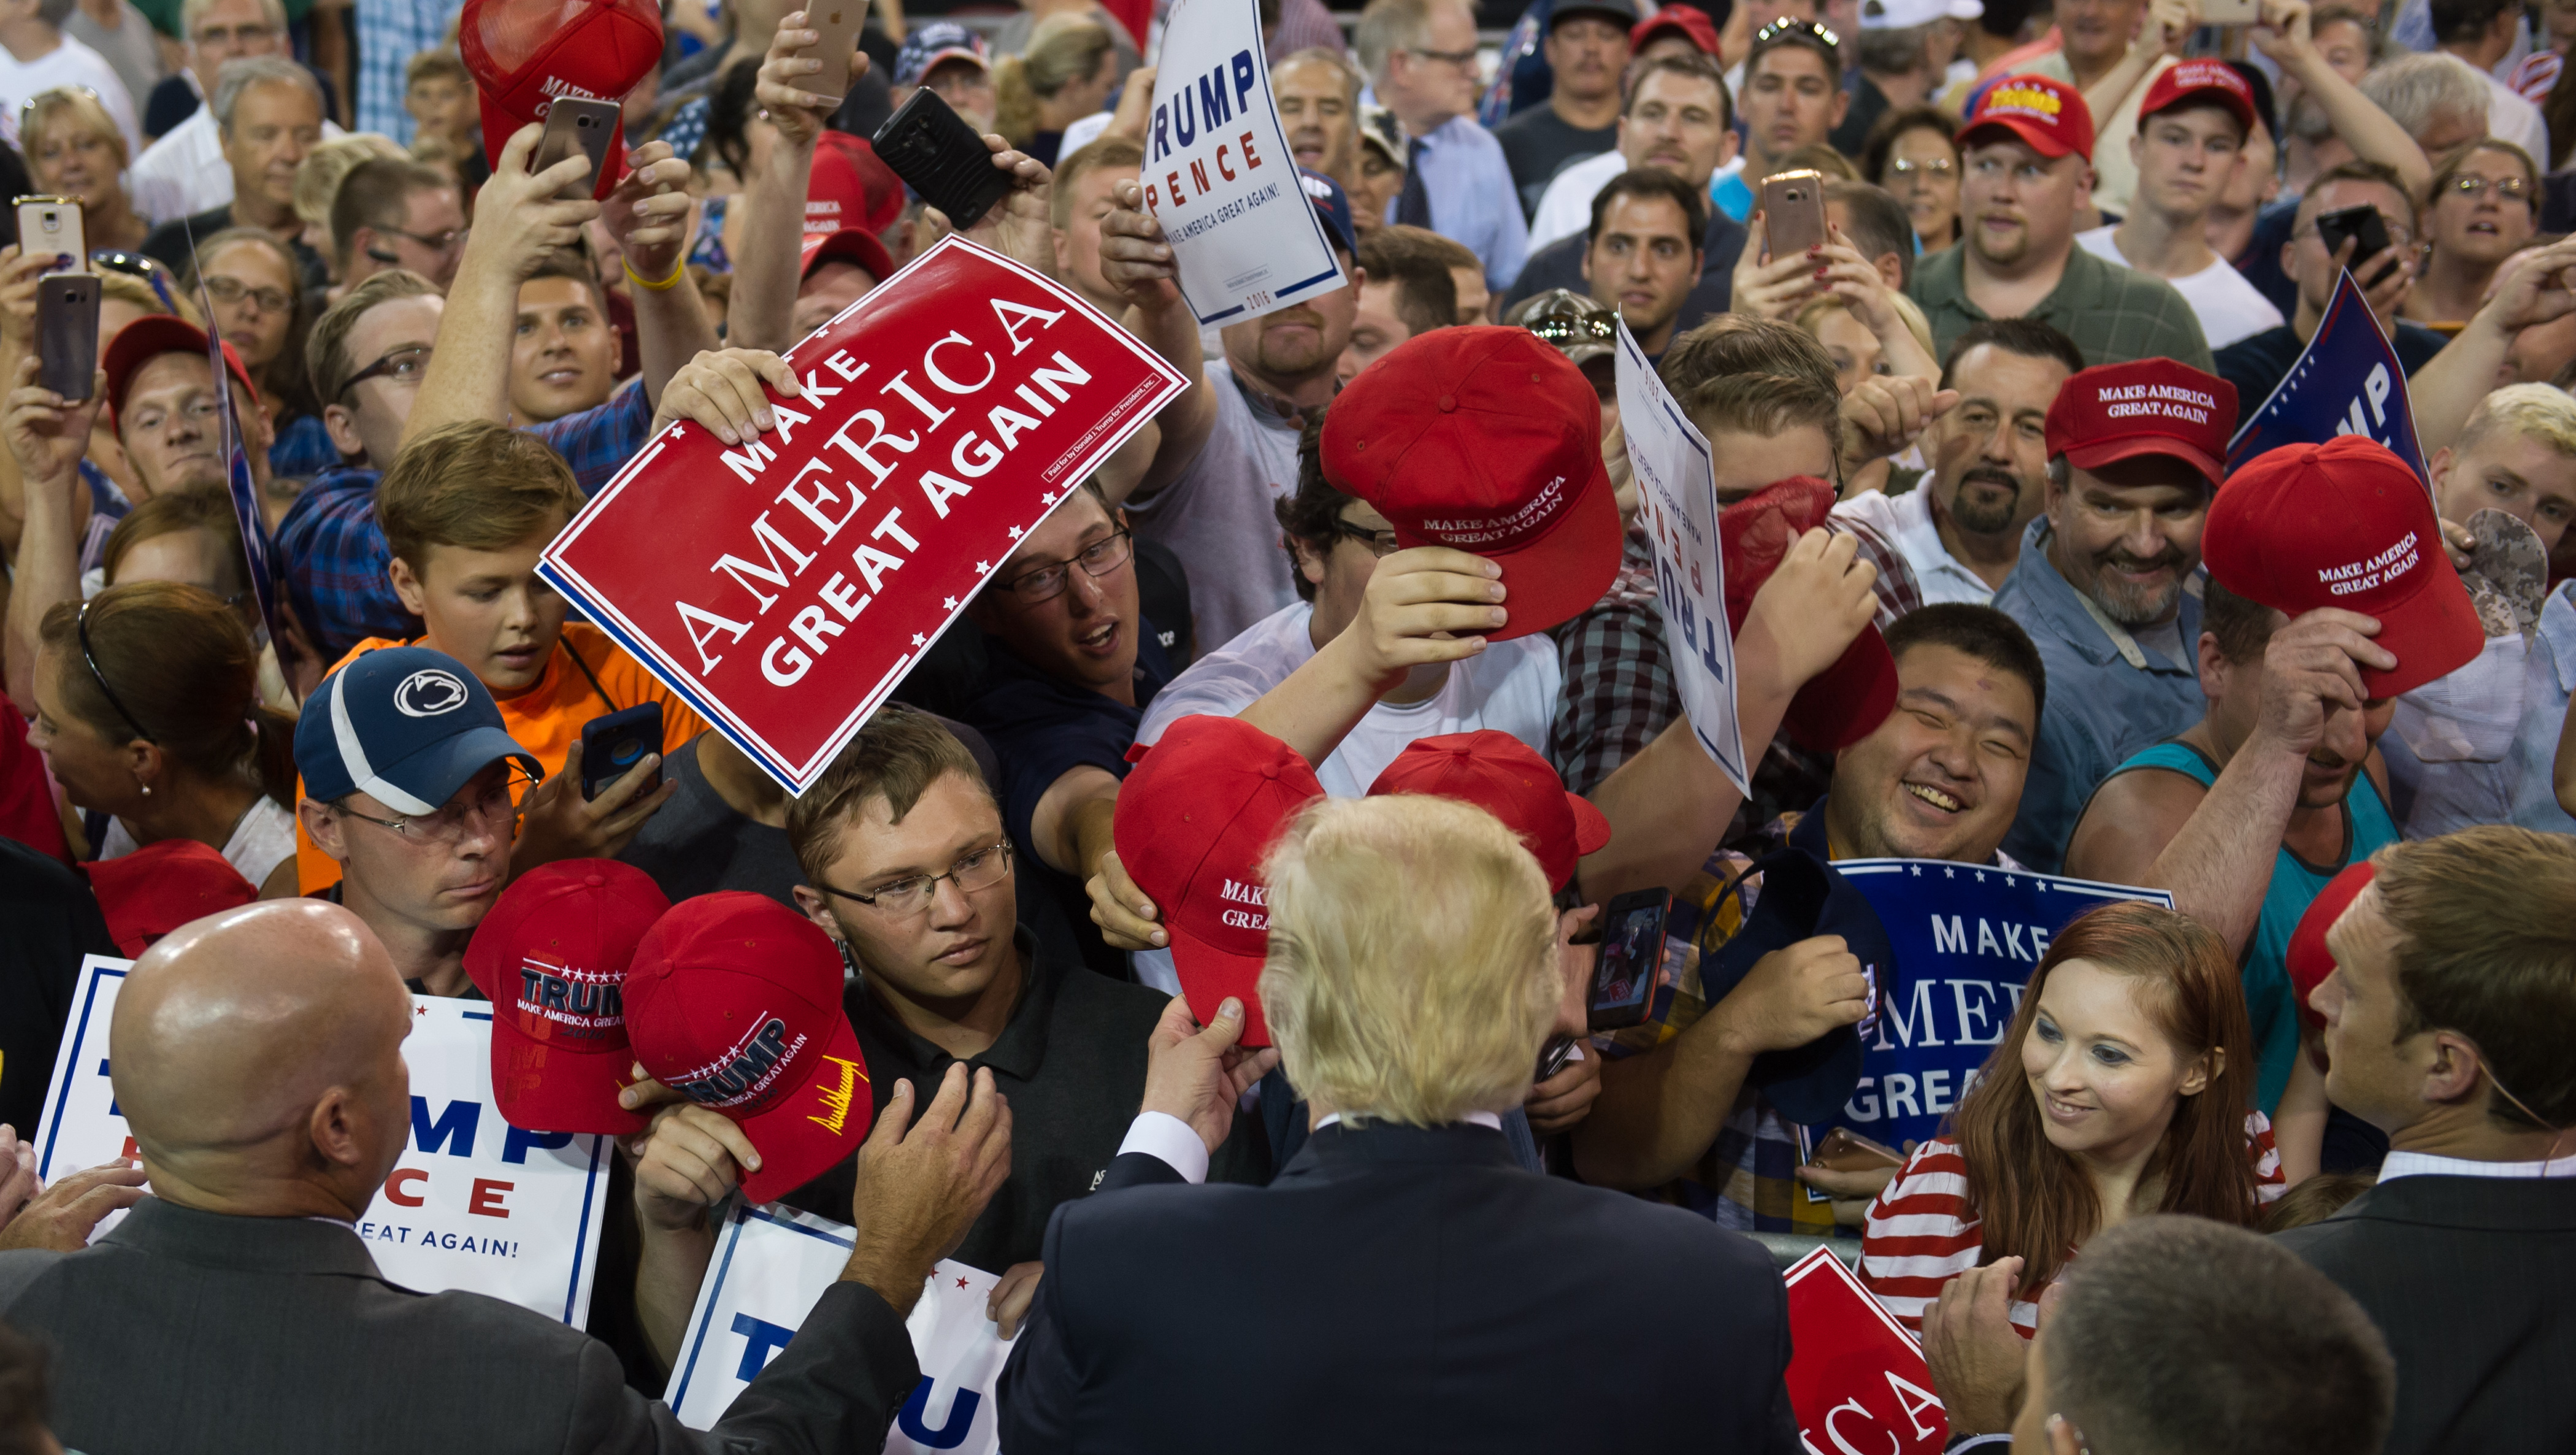 Republican candidate for President Donald Trump speaks to supporters at a rally at Erie Insurance Arena in Erie, Penn., on Aug. 12, 2016.